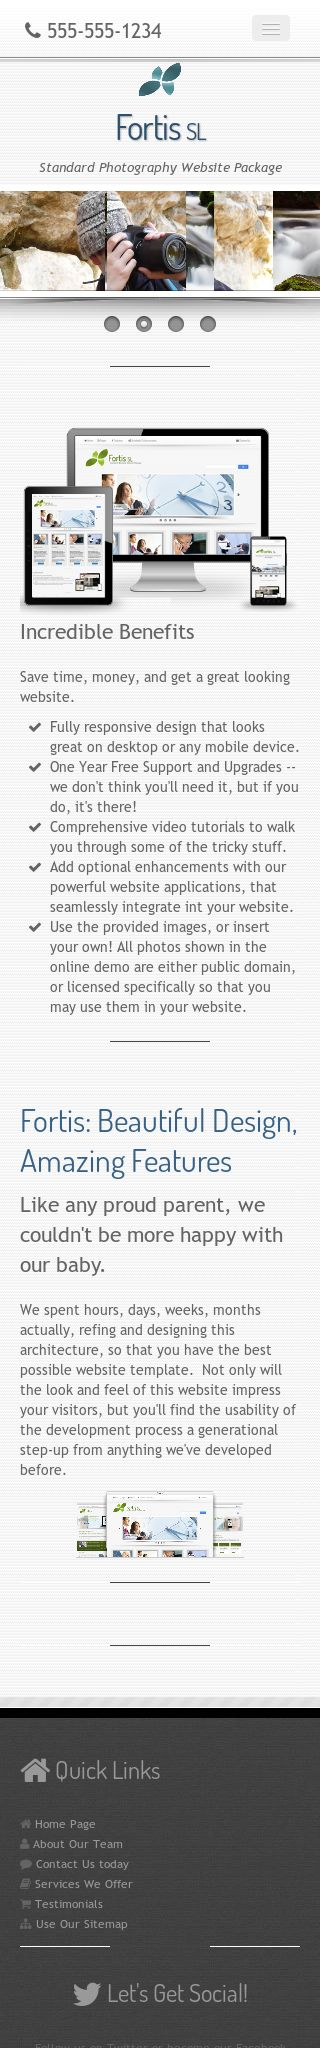 Mobile: Photography Wordpress Theme